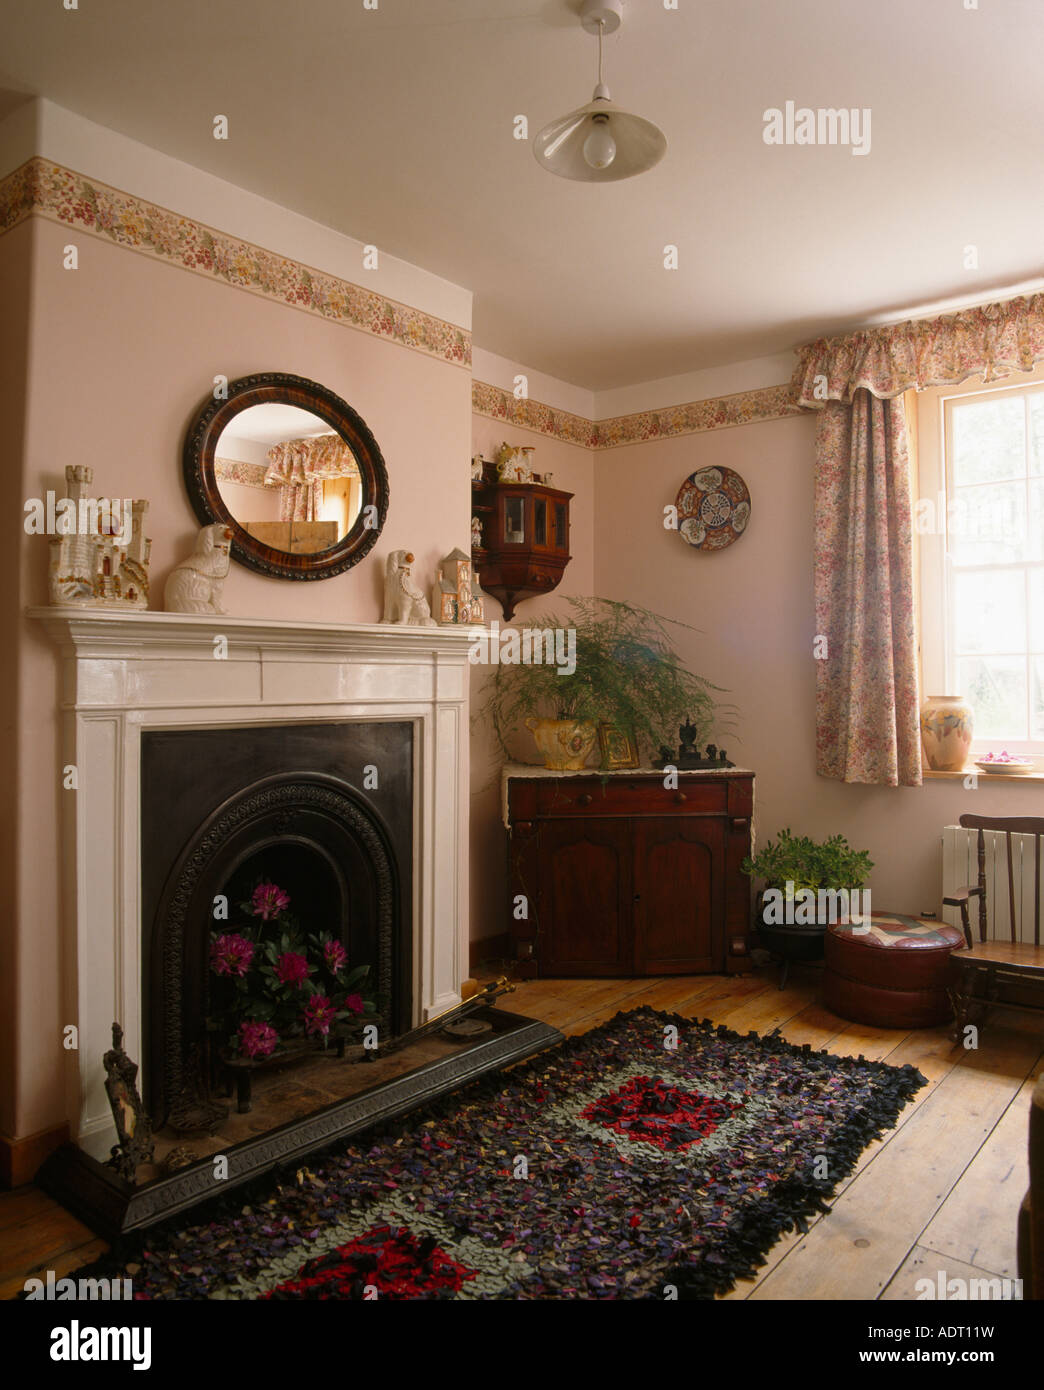 https://c8.alamy.com/comp/ADT11W/rag-rug-in-front-of-fireplace-in-small-livingroom-with-wallpaper-border-ADT11W.jpg